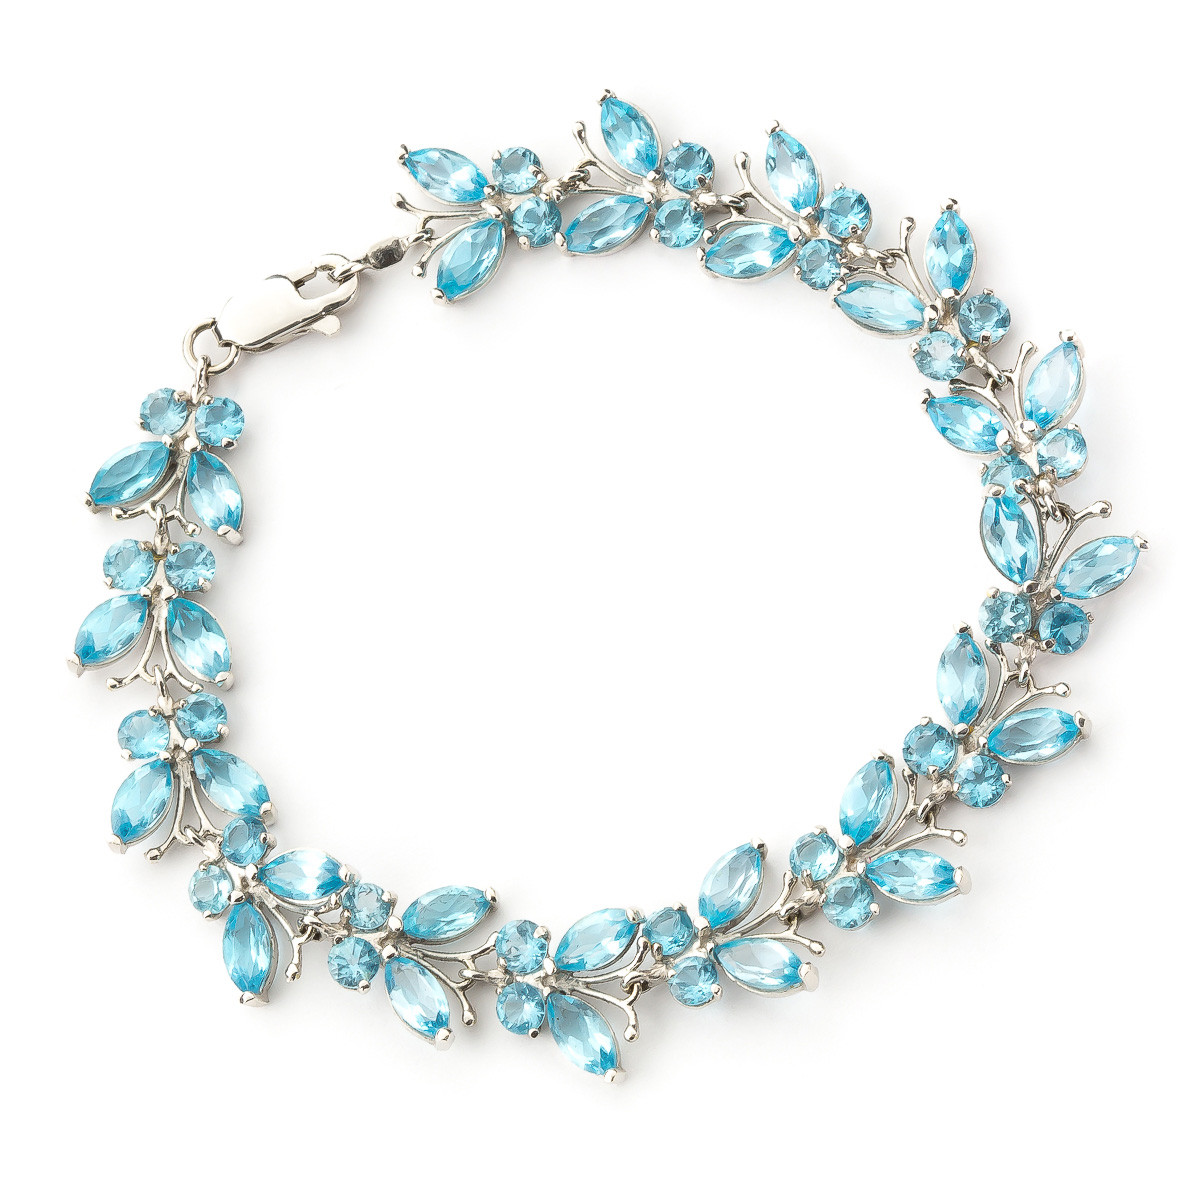 Blue Topaz Butterfly Bracelet 16.5 ctw in 9ct White Gold